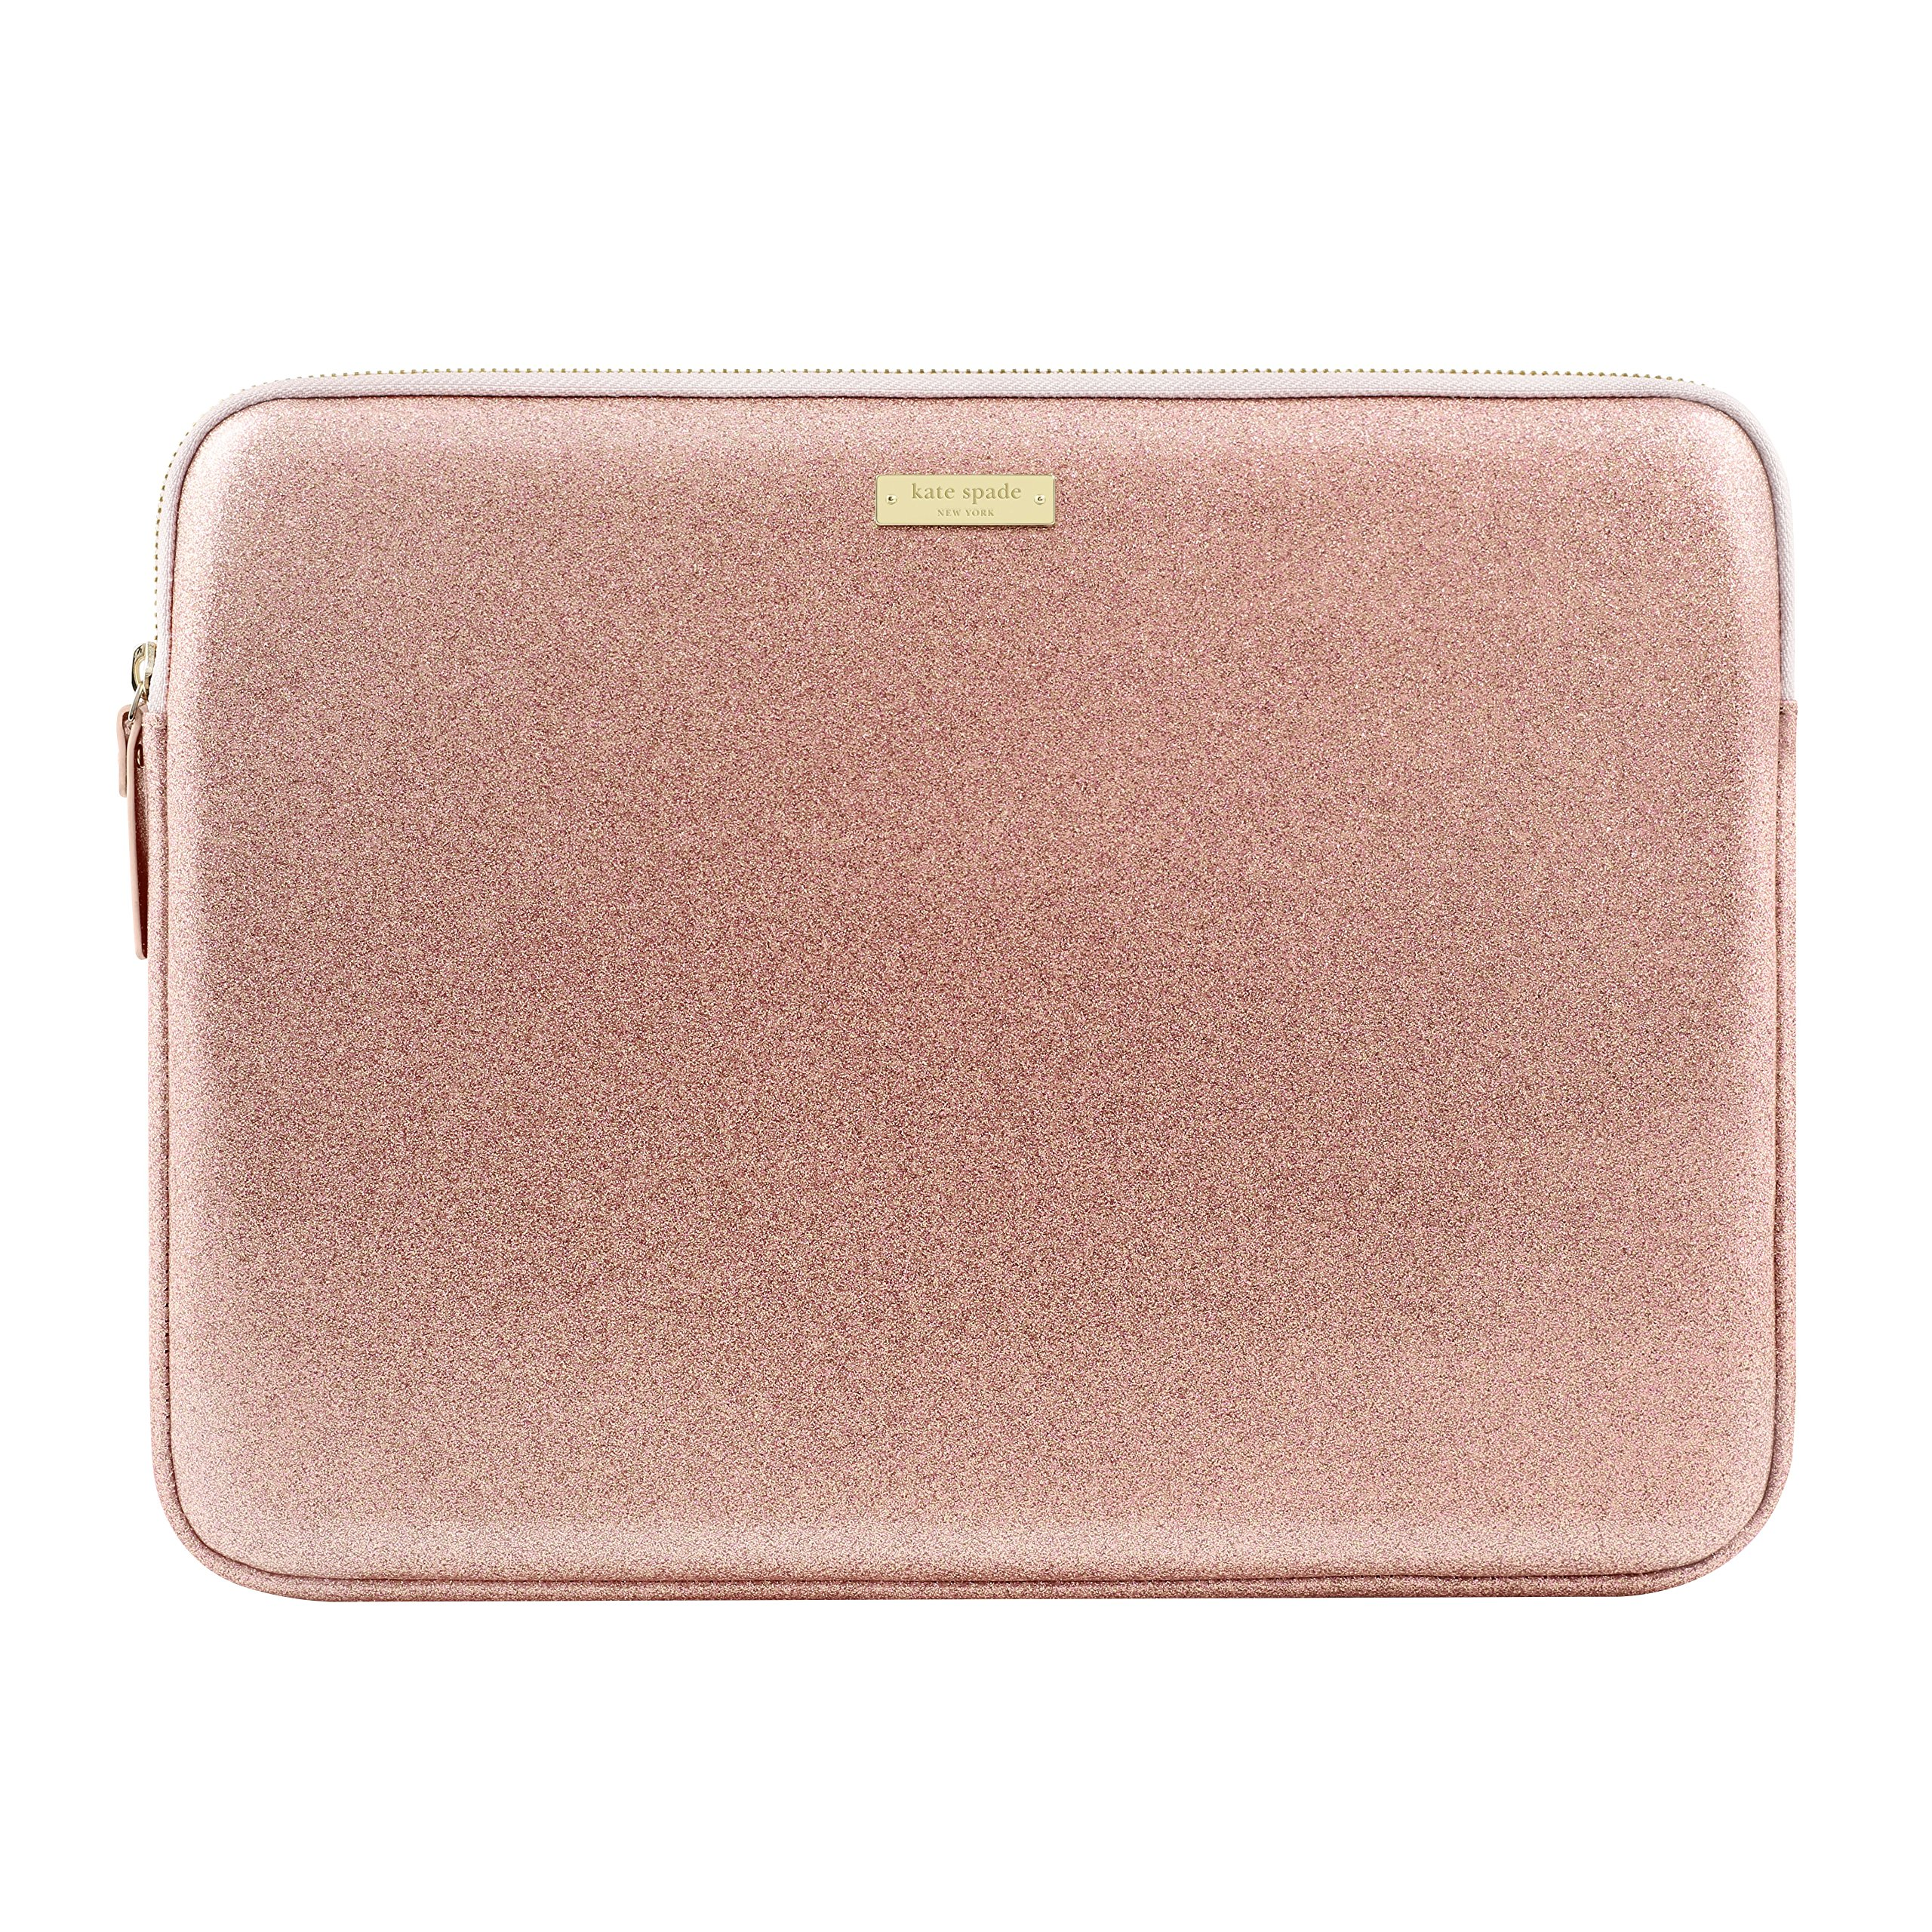 kate spade new york Sleeve for 13'' MacBook, 13'' Laptop - Rose Gold Glitter by Kate Spade New York